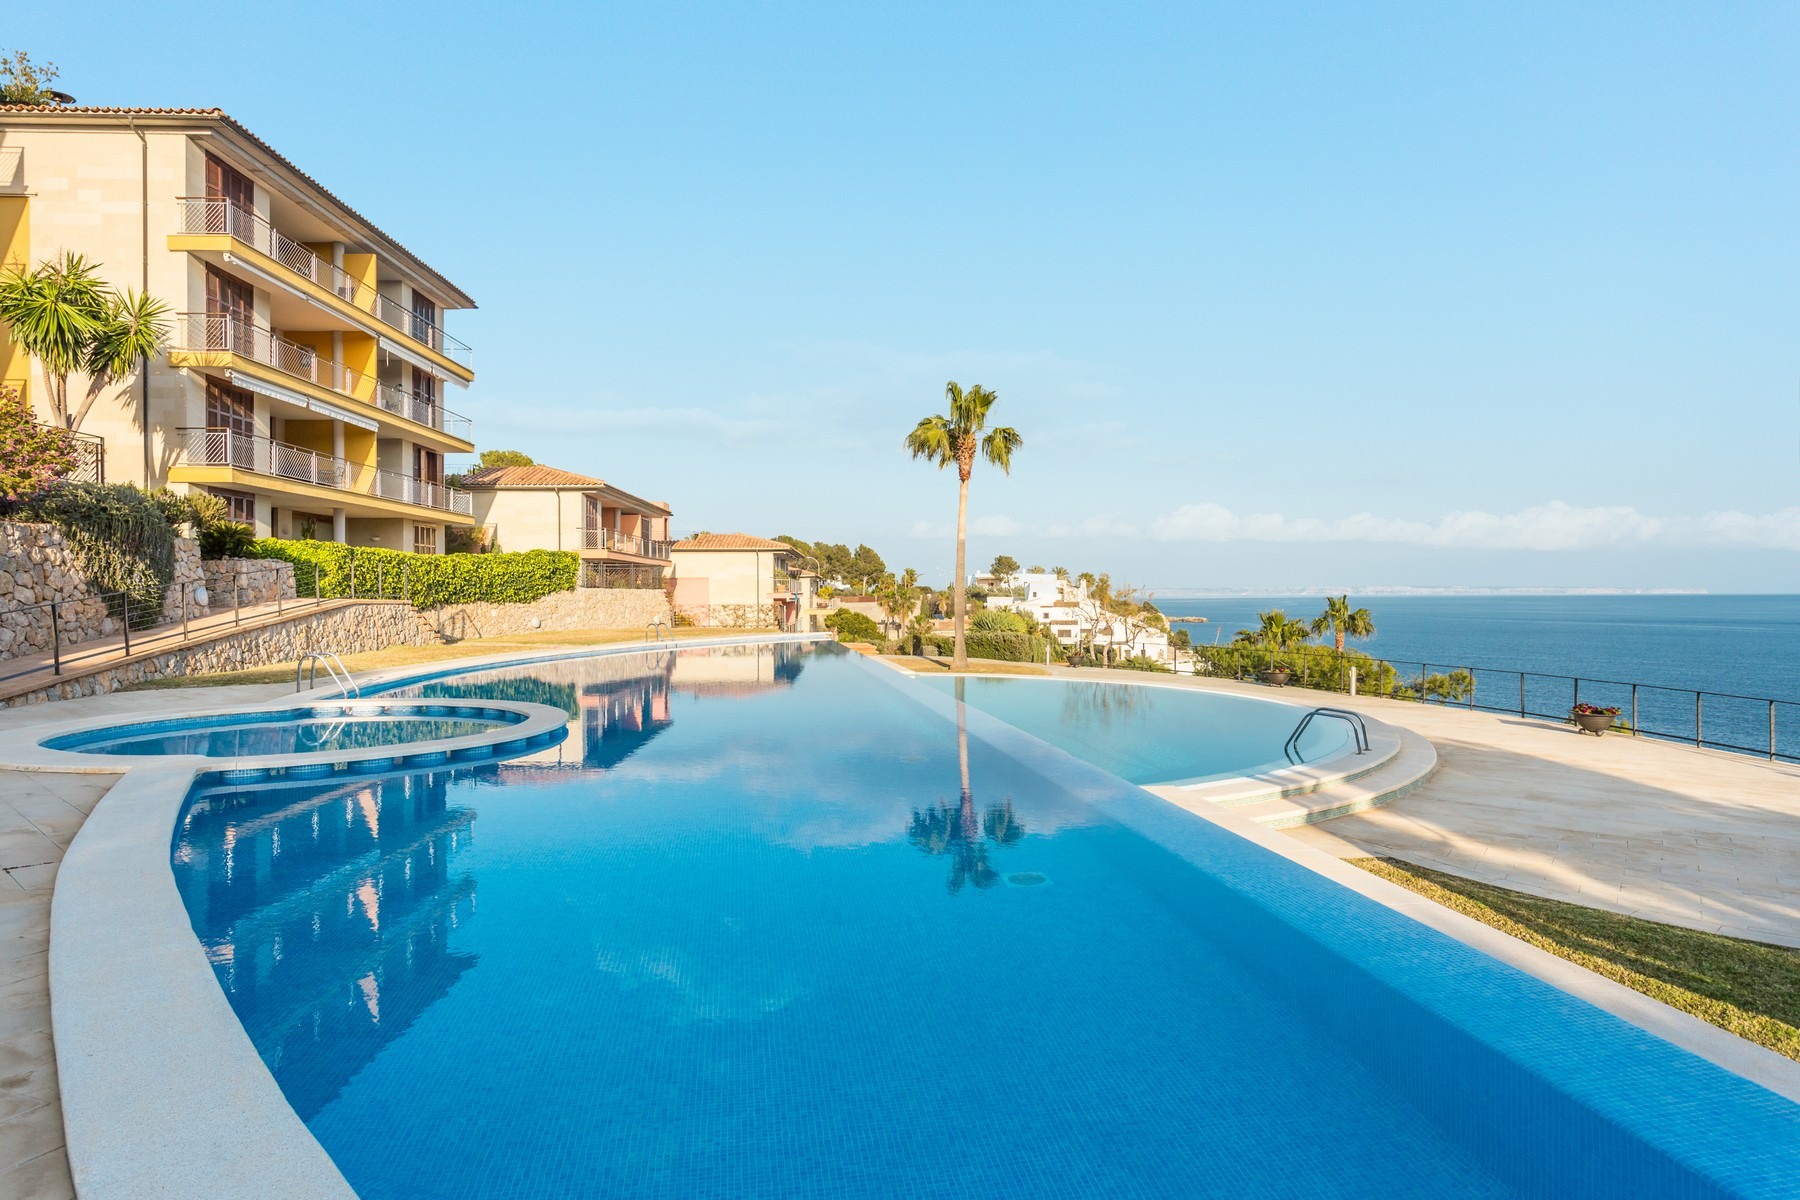 Apartment for Sale at Luxurious seafront penthouse in Sol de Mallorca Sol De Mallorca, Mallorca, 07180 Spain